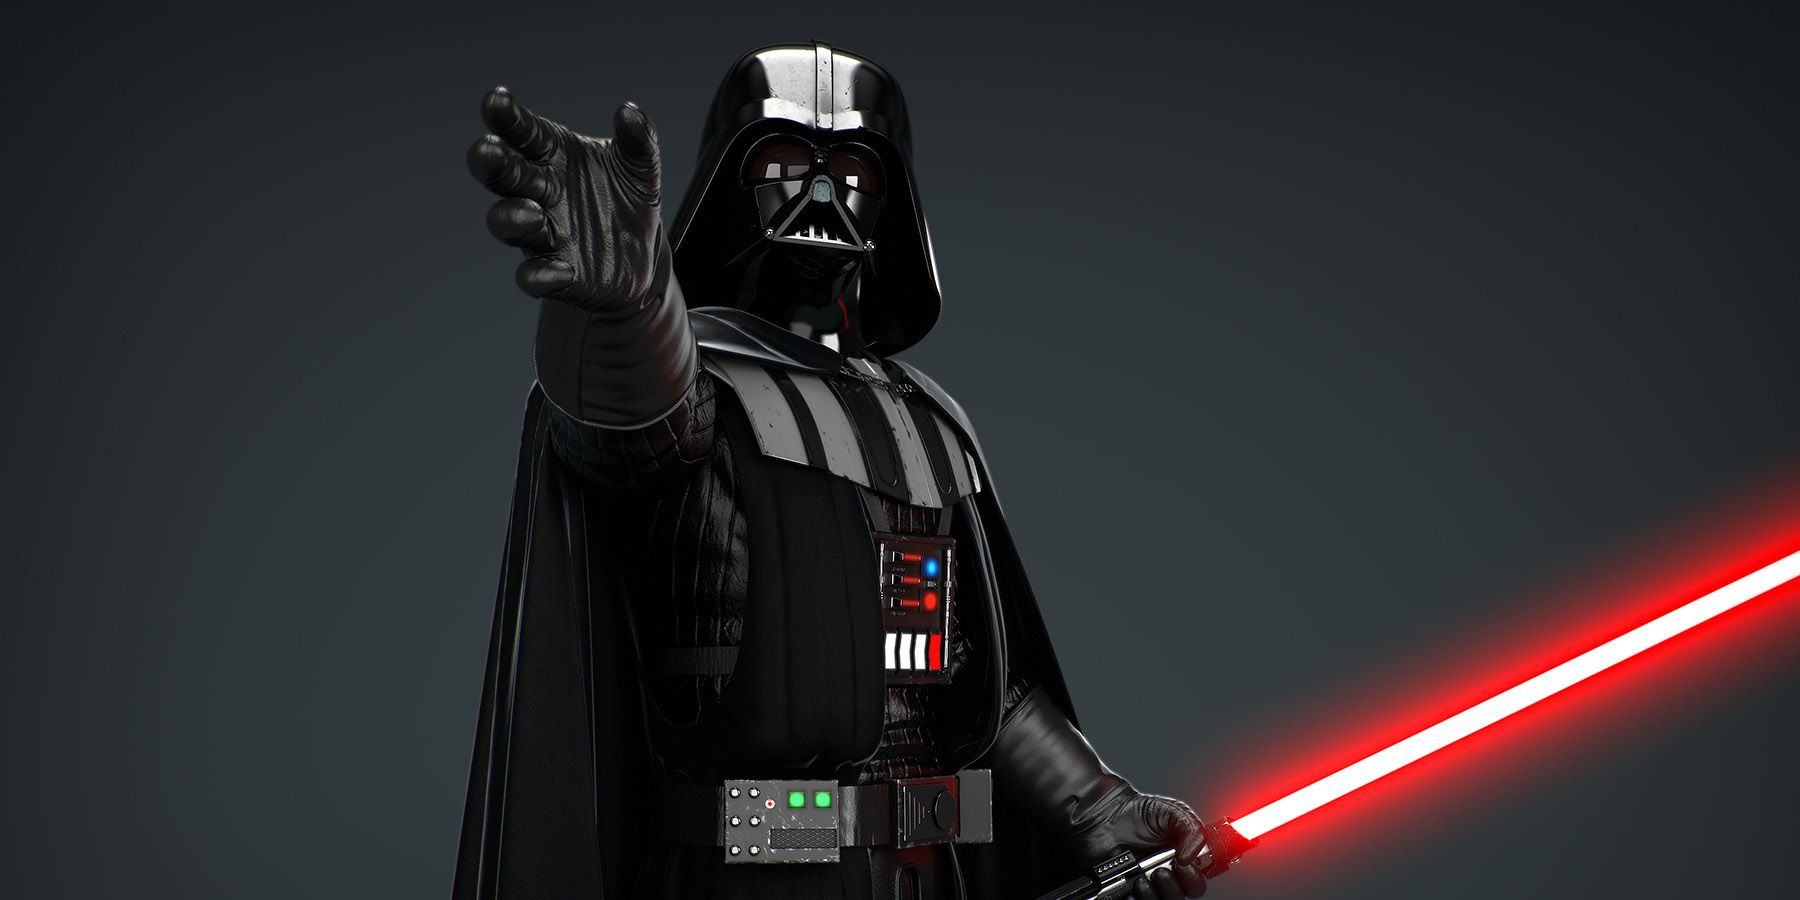 Star Wars Darth Vaders Rogue One Role Explained